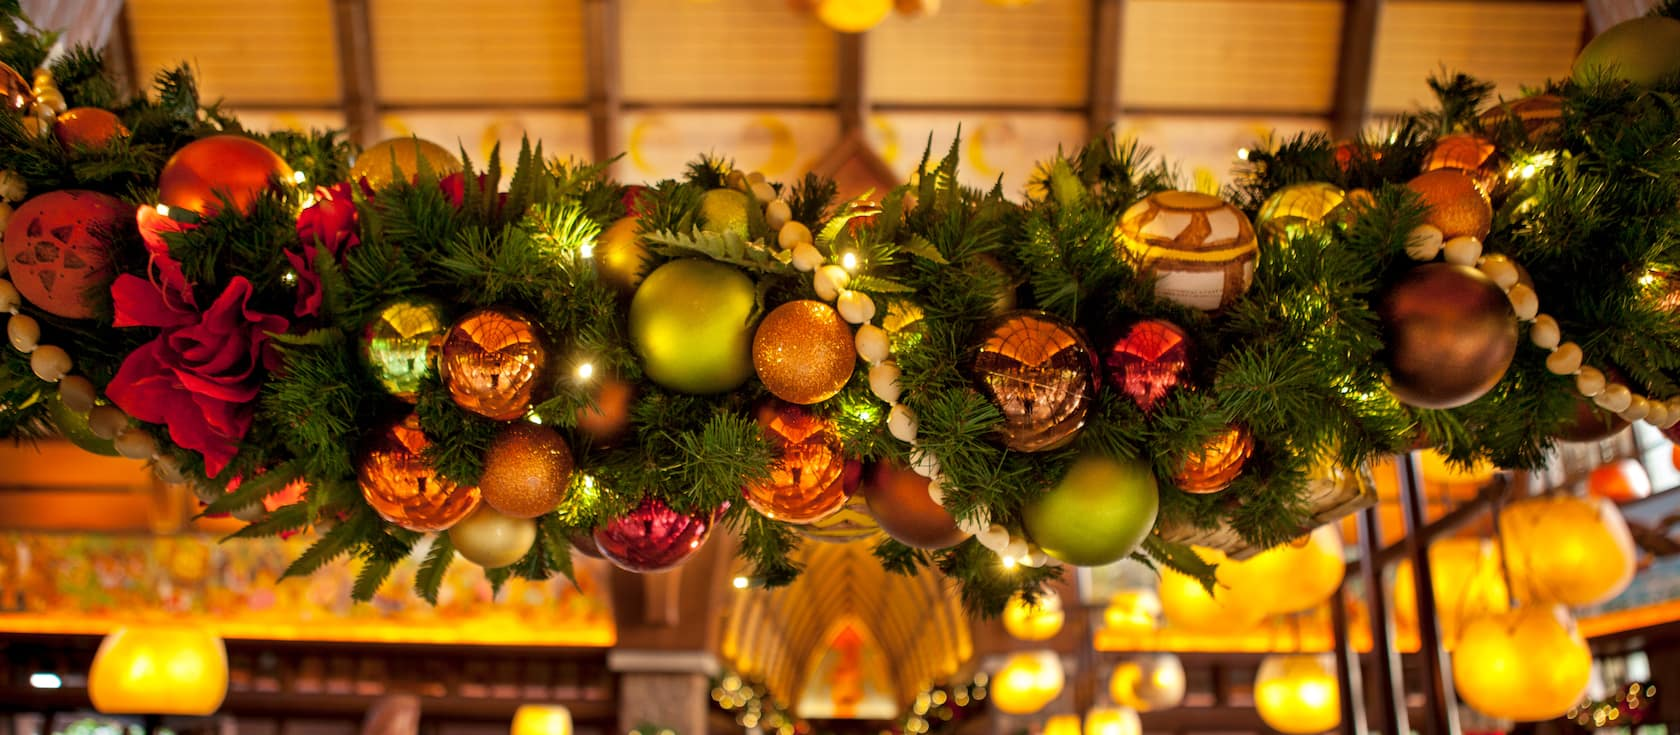 An evergreen Christmas swag decorated with ornaments and strung with beads hanging in the Aulani Resort lobby